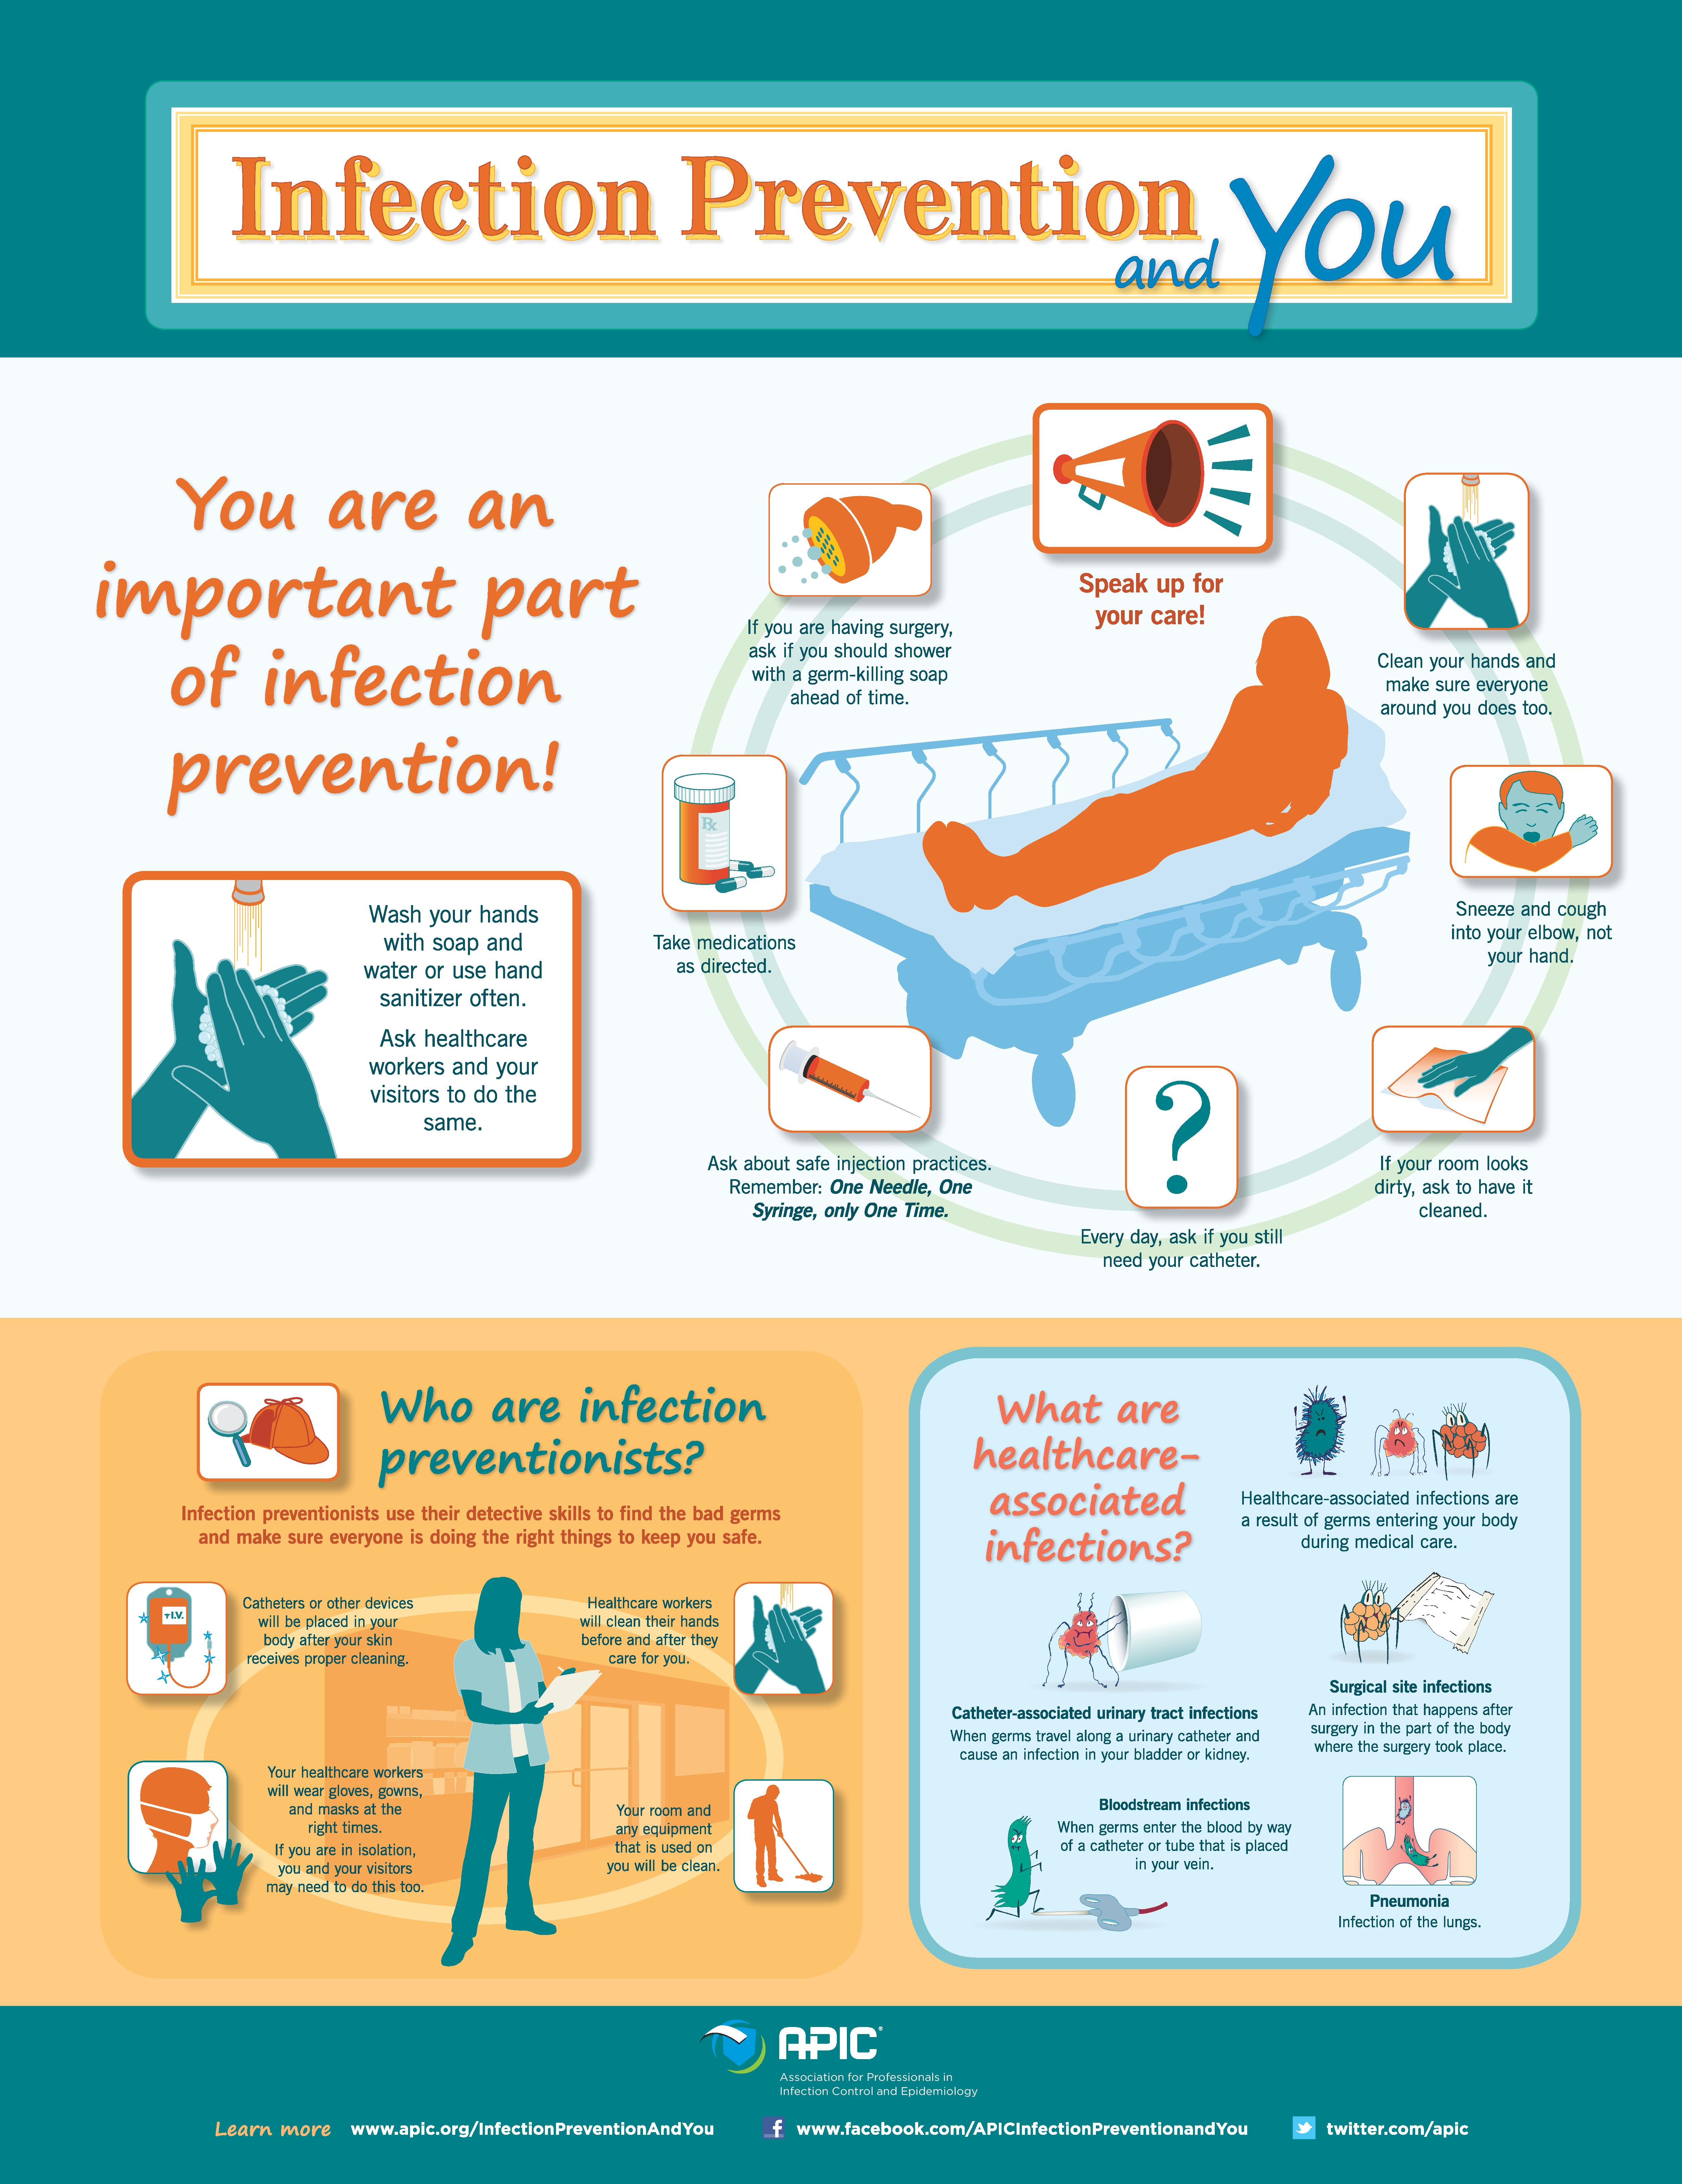 Infection Prevention and You!